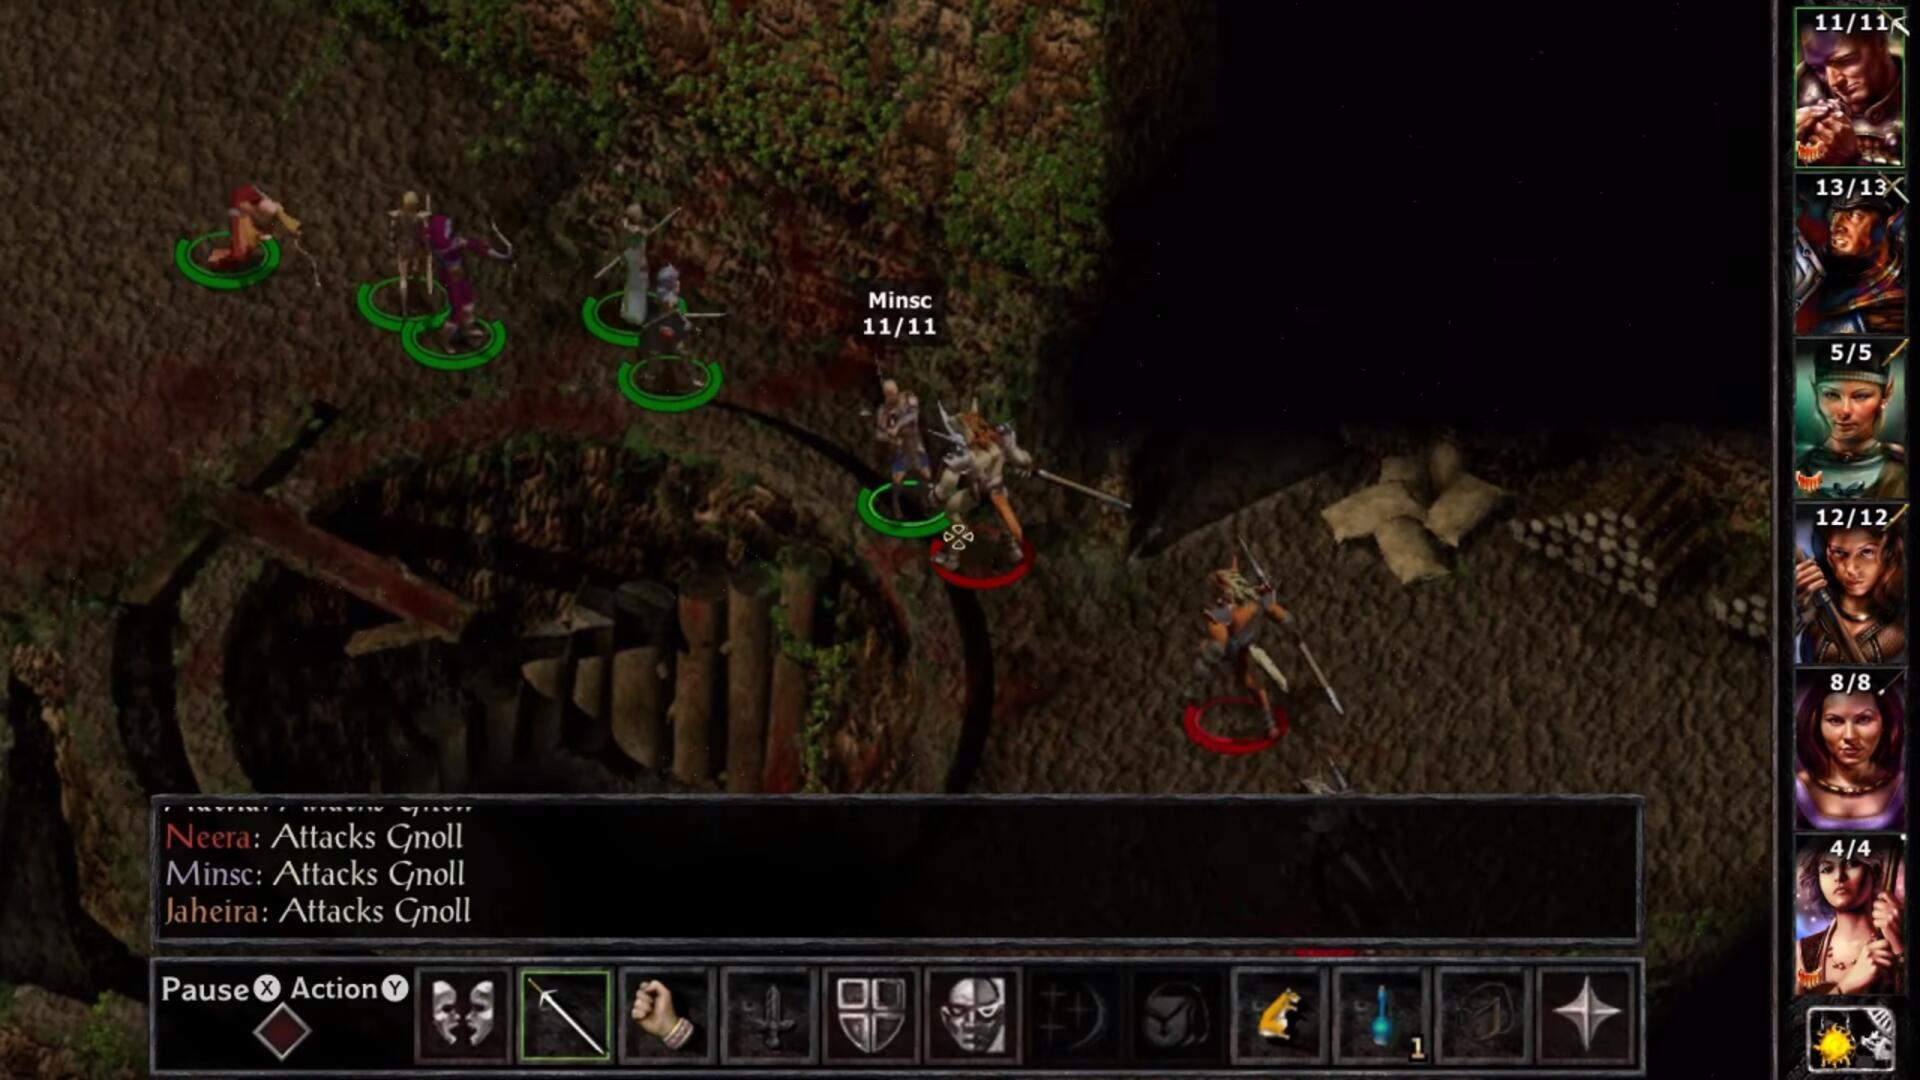 Enhanced Editions of Baldur's Gate, Planescape: Torment, and More Are Coming to Consoles This Year